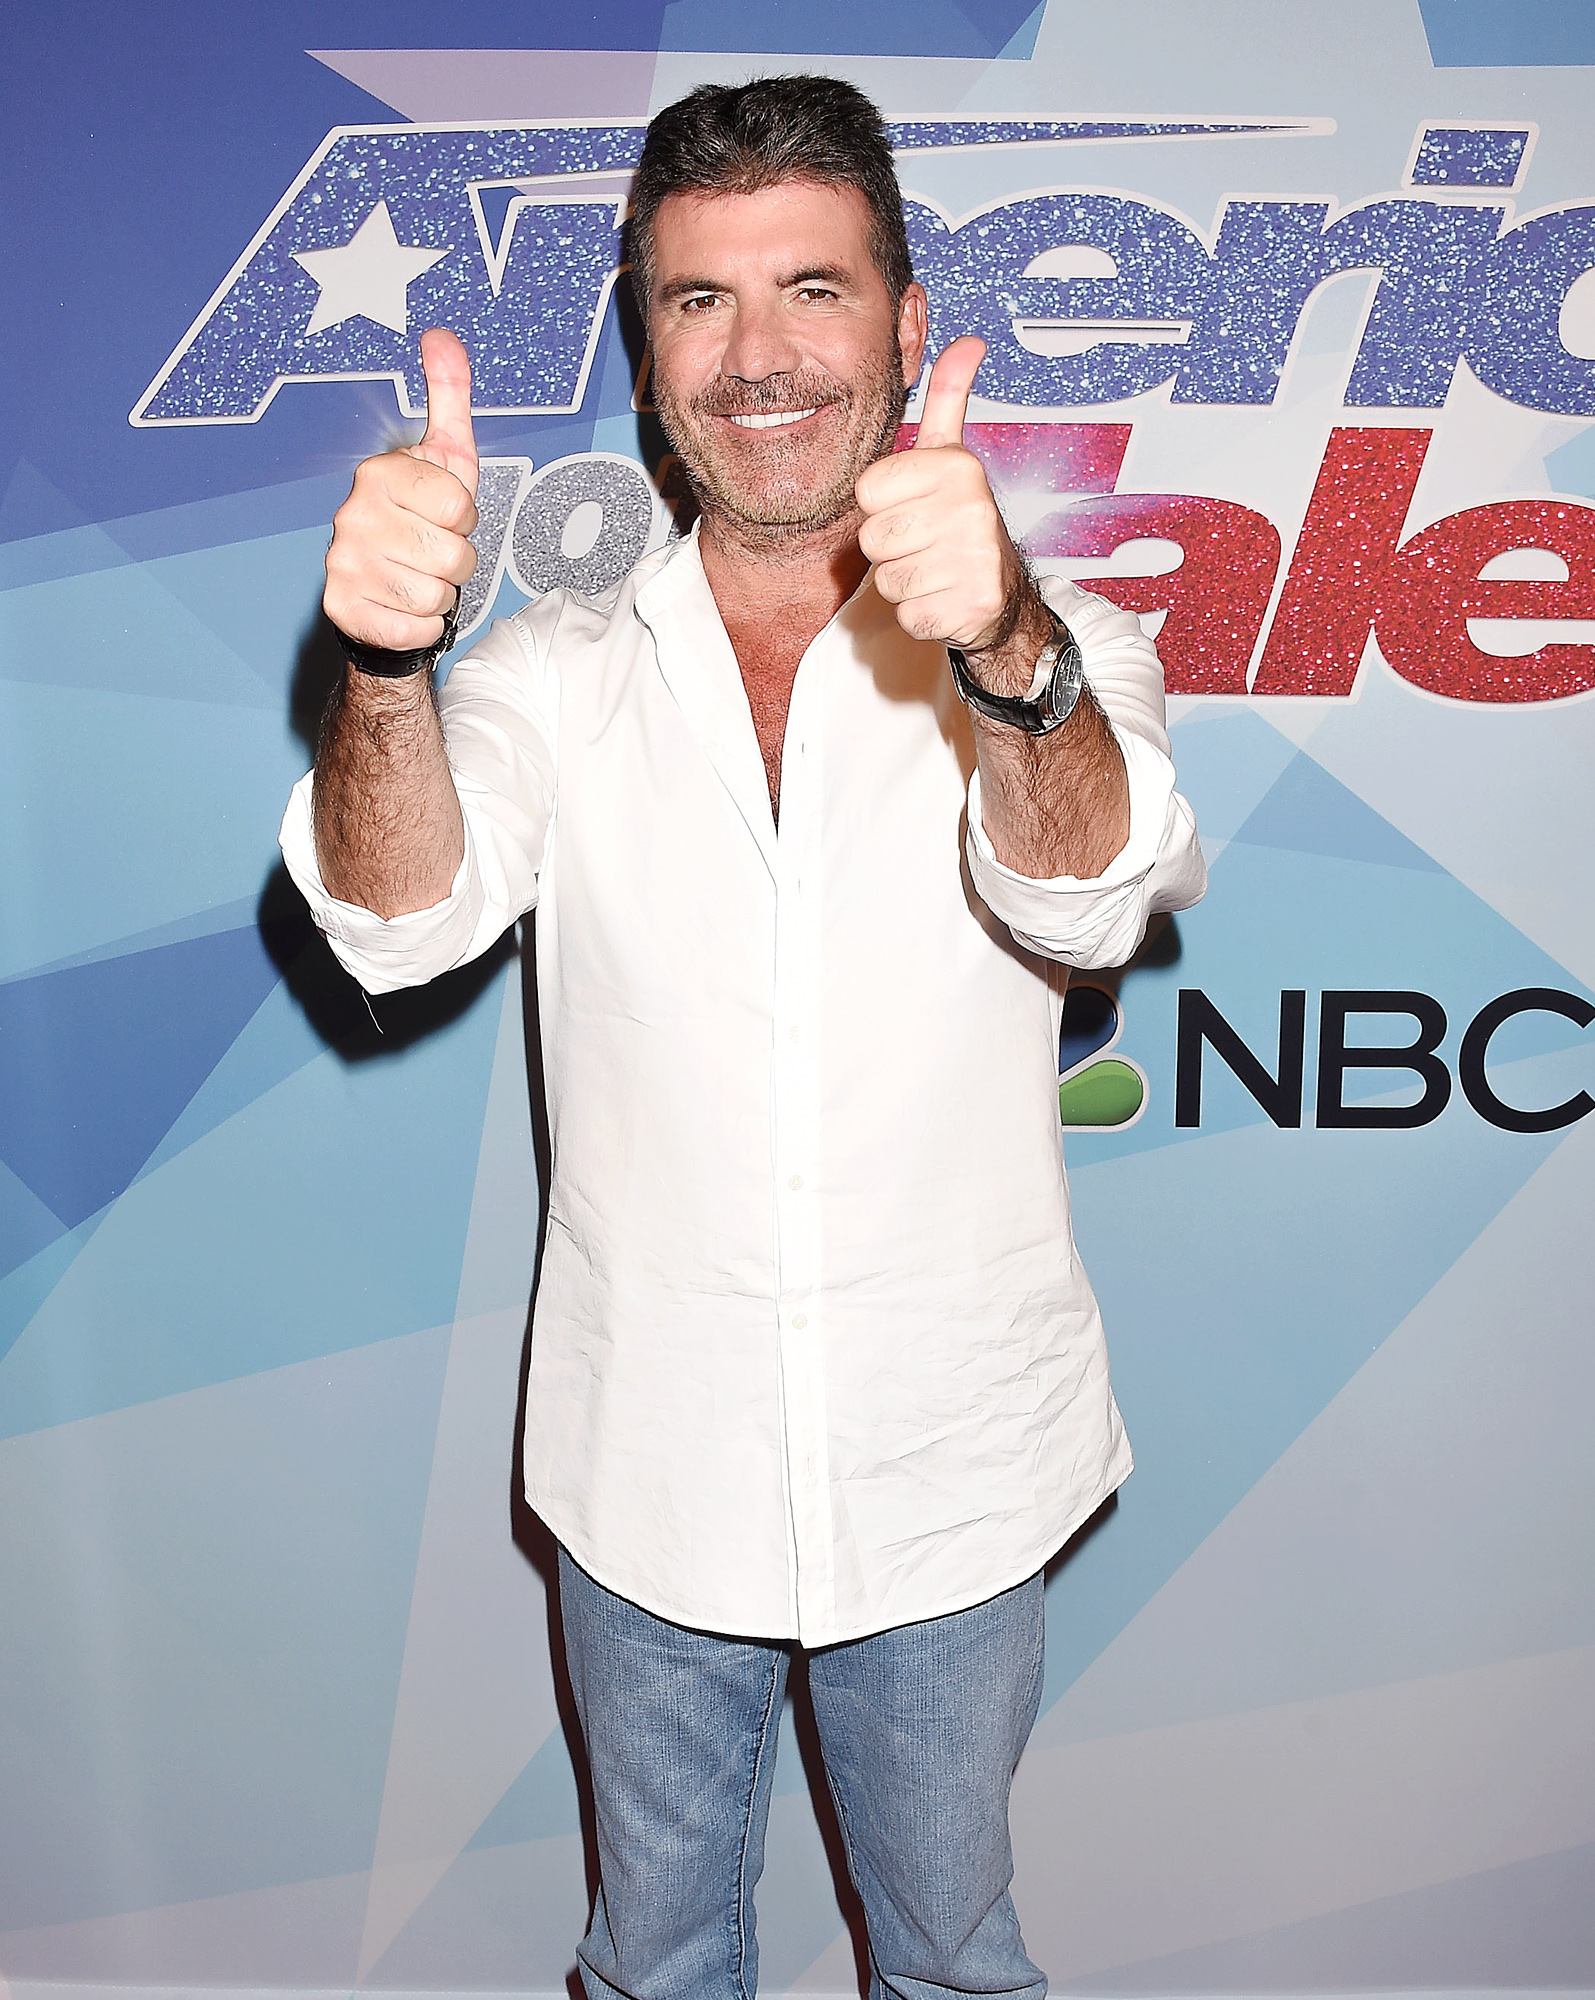 NBC's 'America's Got Talent' Season 12 Live Show - Arrivals